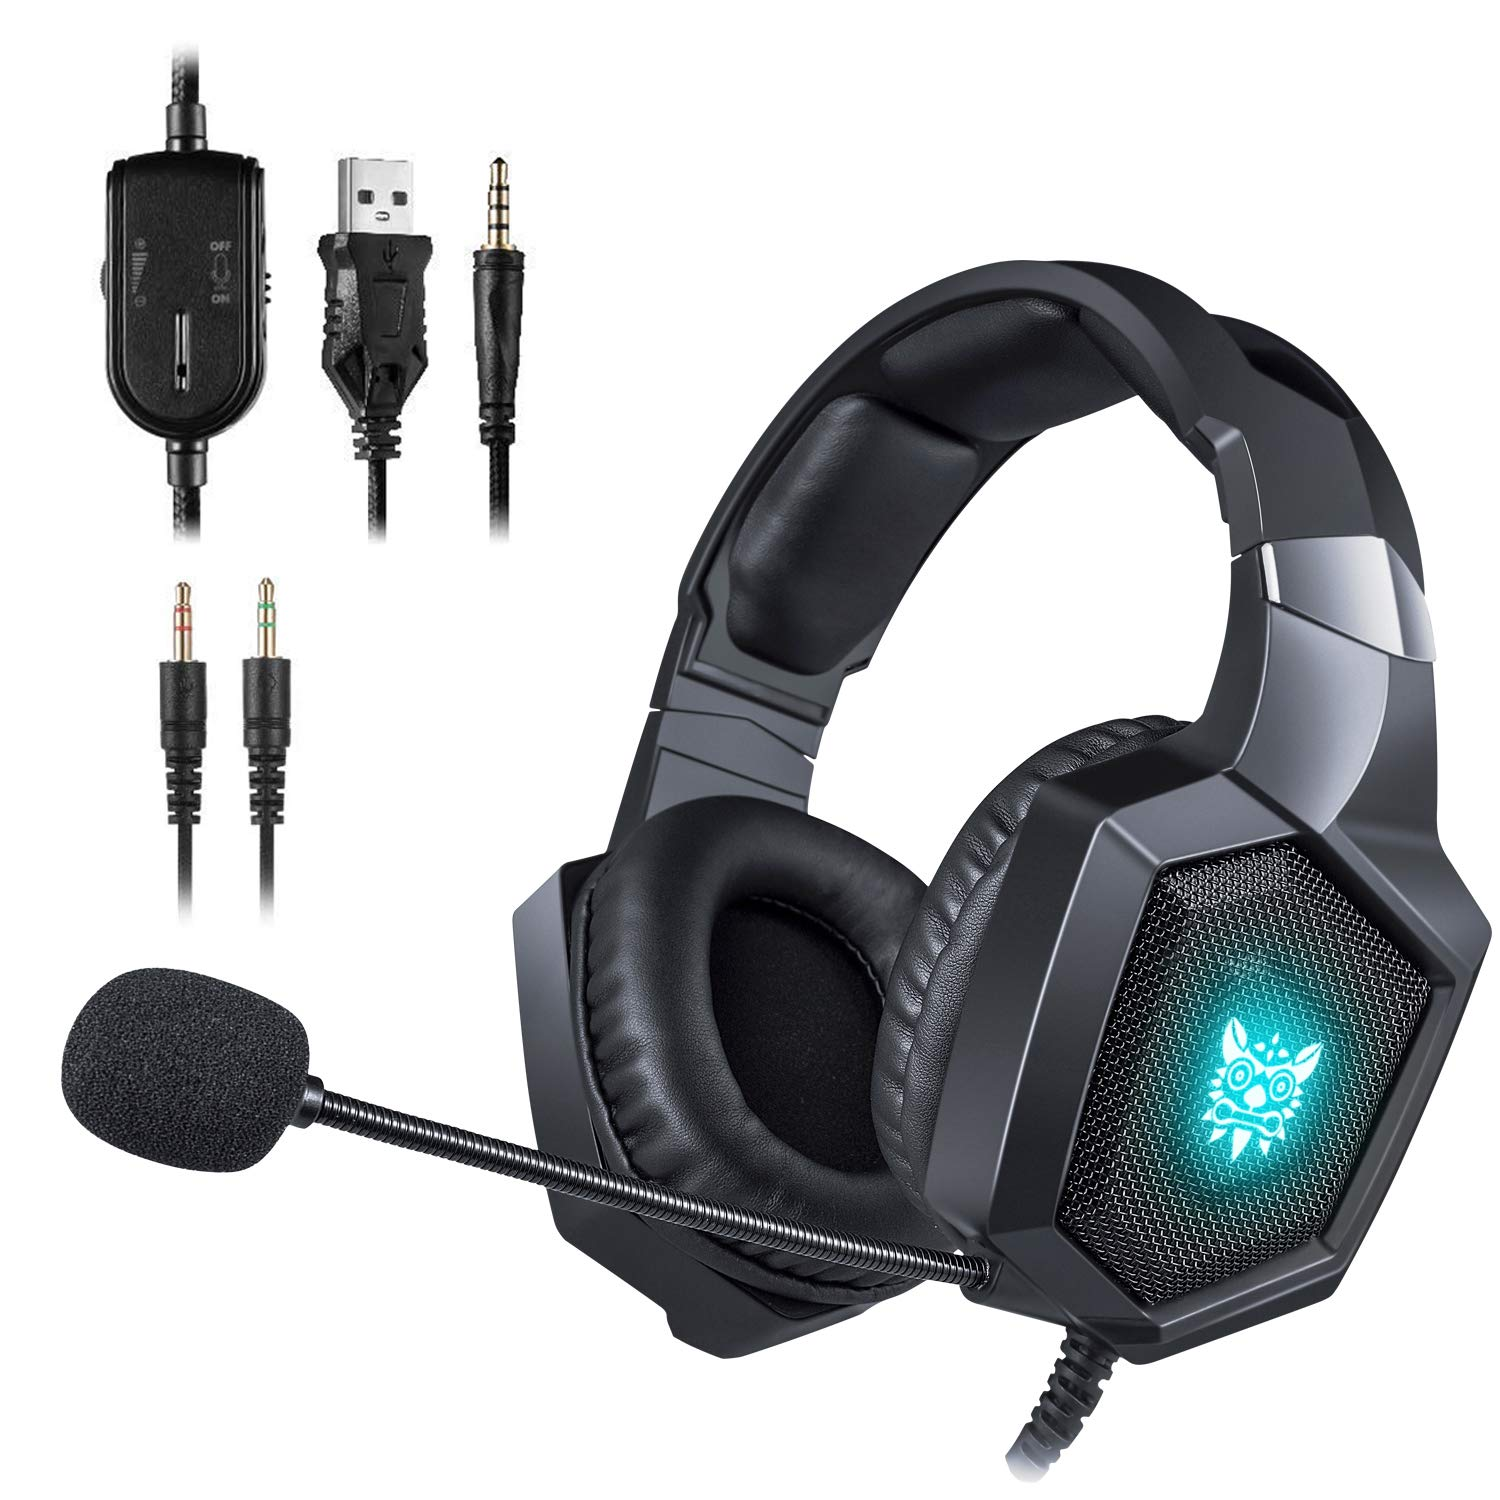 ONIKUMA Gaming Headset - Updated K8 Headset Gaming for PS4 New Xbox One, Stereo Over-ear Headphones & Noise-canceling Microphone with Mic for PC Computer Mac Laptop Nintendo Switch Games (Black)